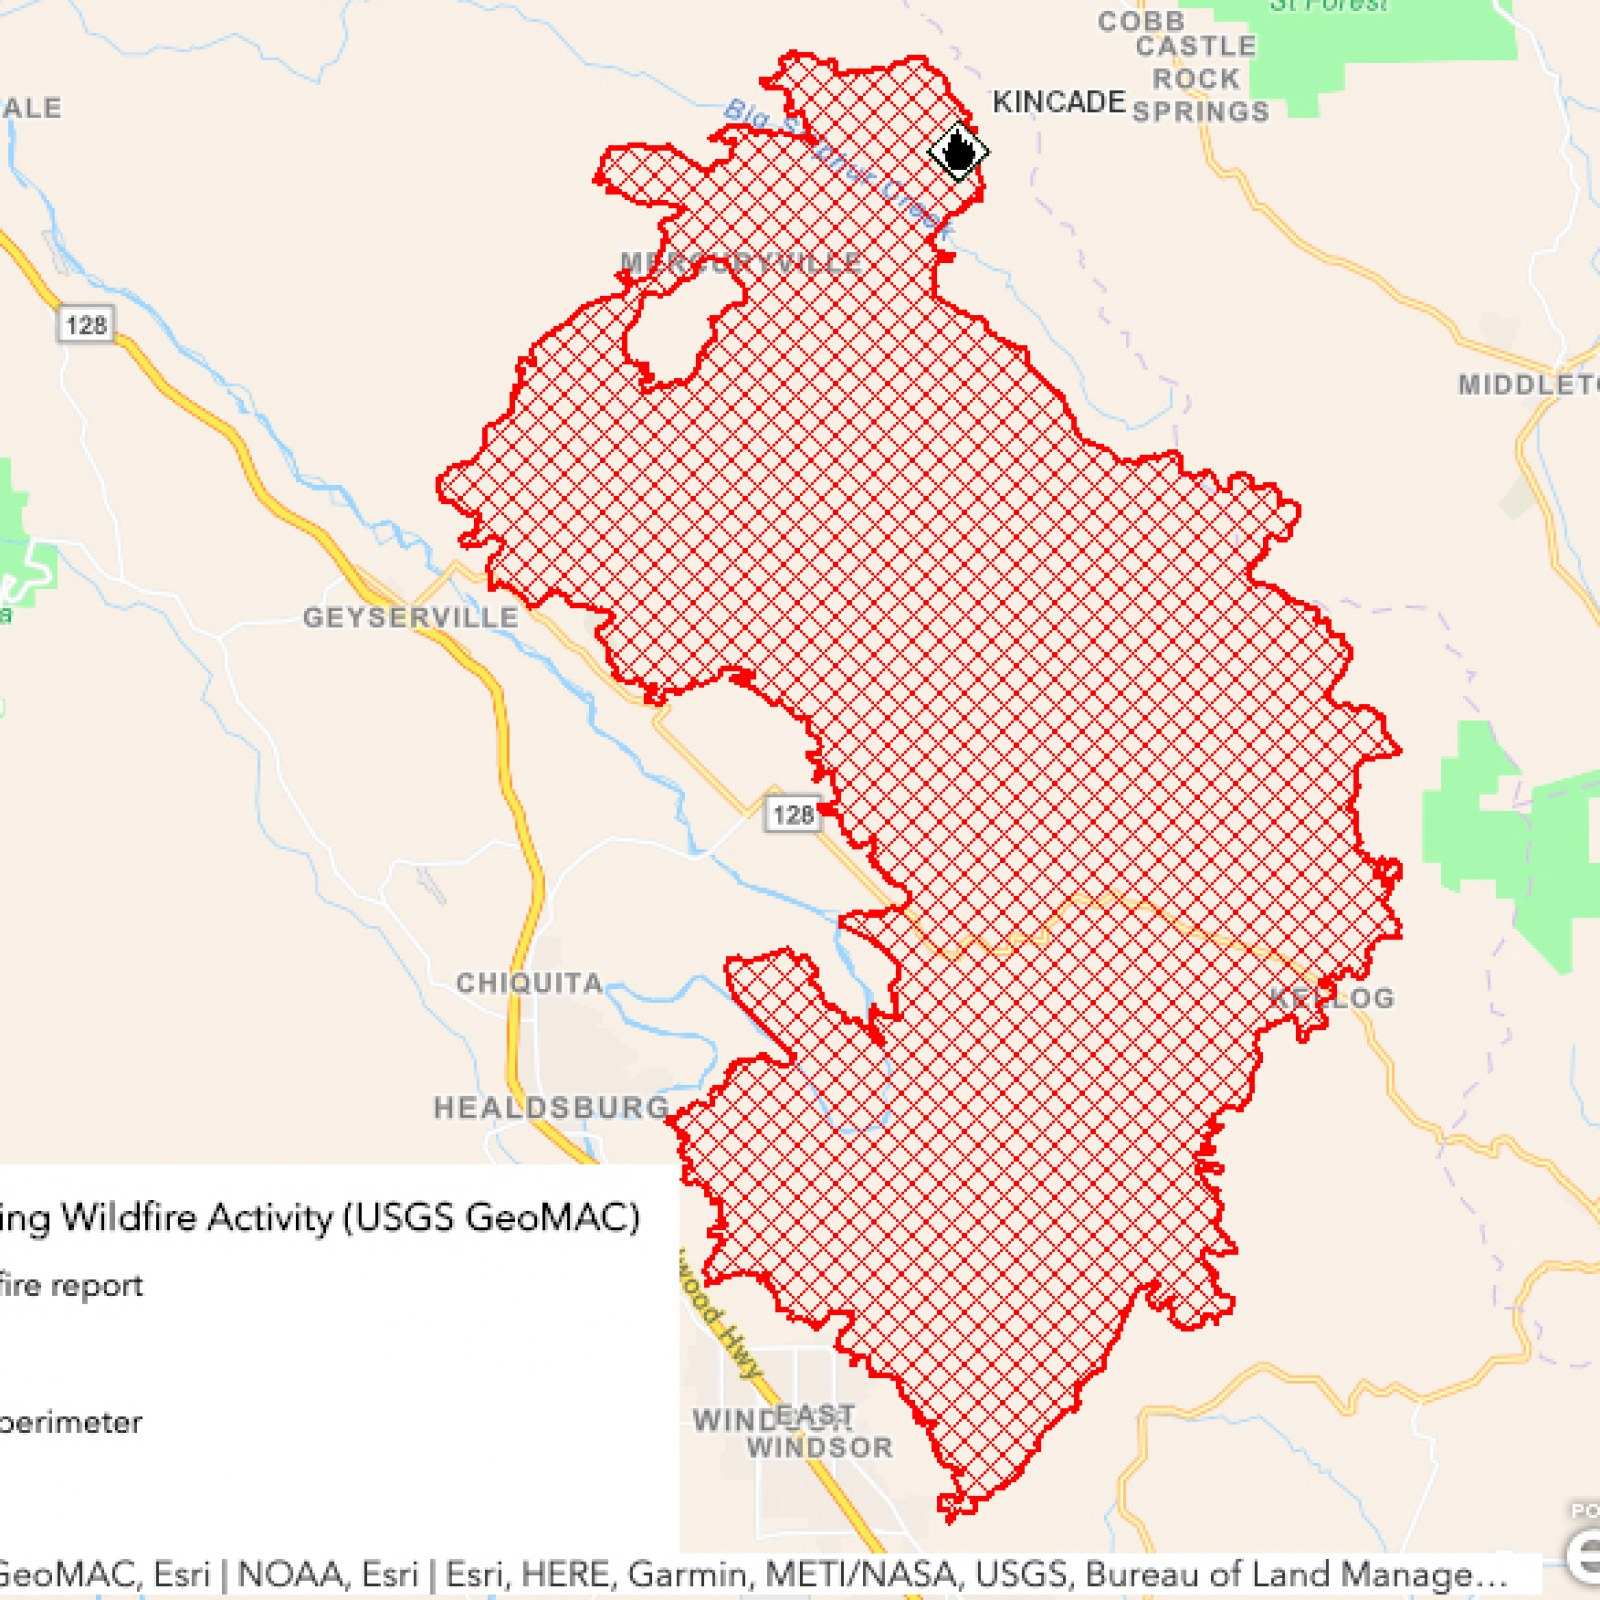 California Fire Map: Maria Fire, Easy Fire, Hill Fire, 46 ... on ventura county cities, san francisco street map, downey street map, suffolk county street map, ventura county festivals, ventura restaurant map, ventura county information, orange street map, ventura county home, cerritos street map, palmdale street map, meade county street map, ventura county parcel maps, putnam county street map, santa cruz county street map, los angeles orange county map, placer county street map, madera county street map, national city street map, ventura ca map,